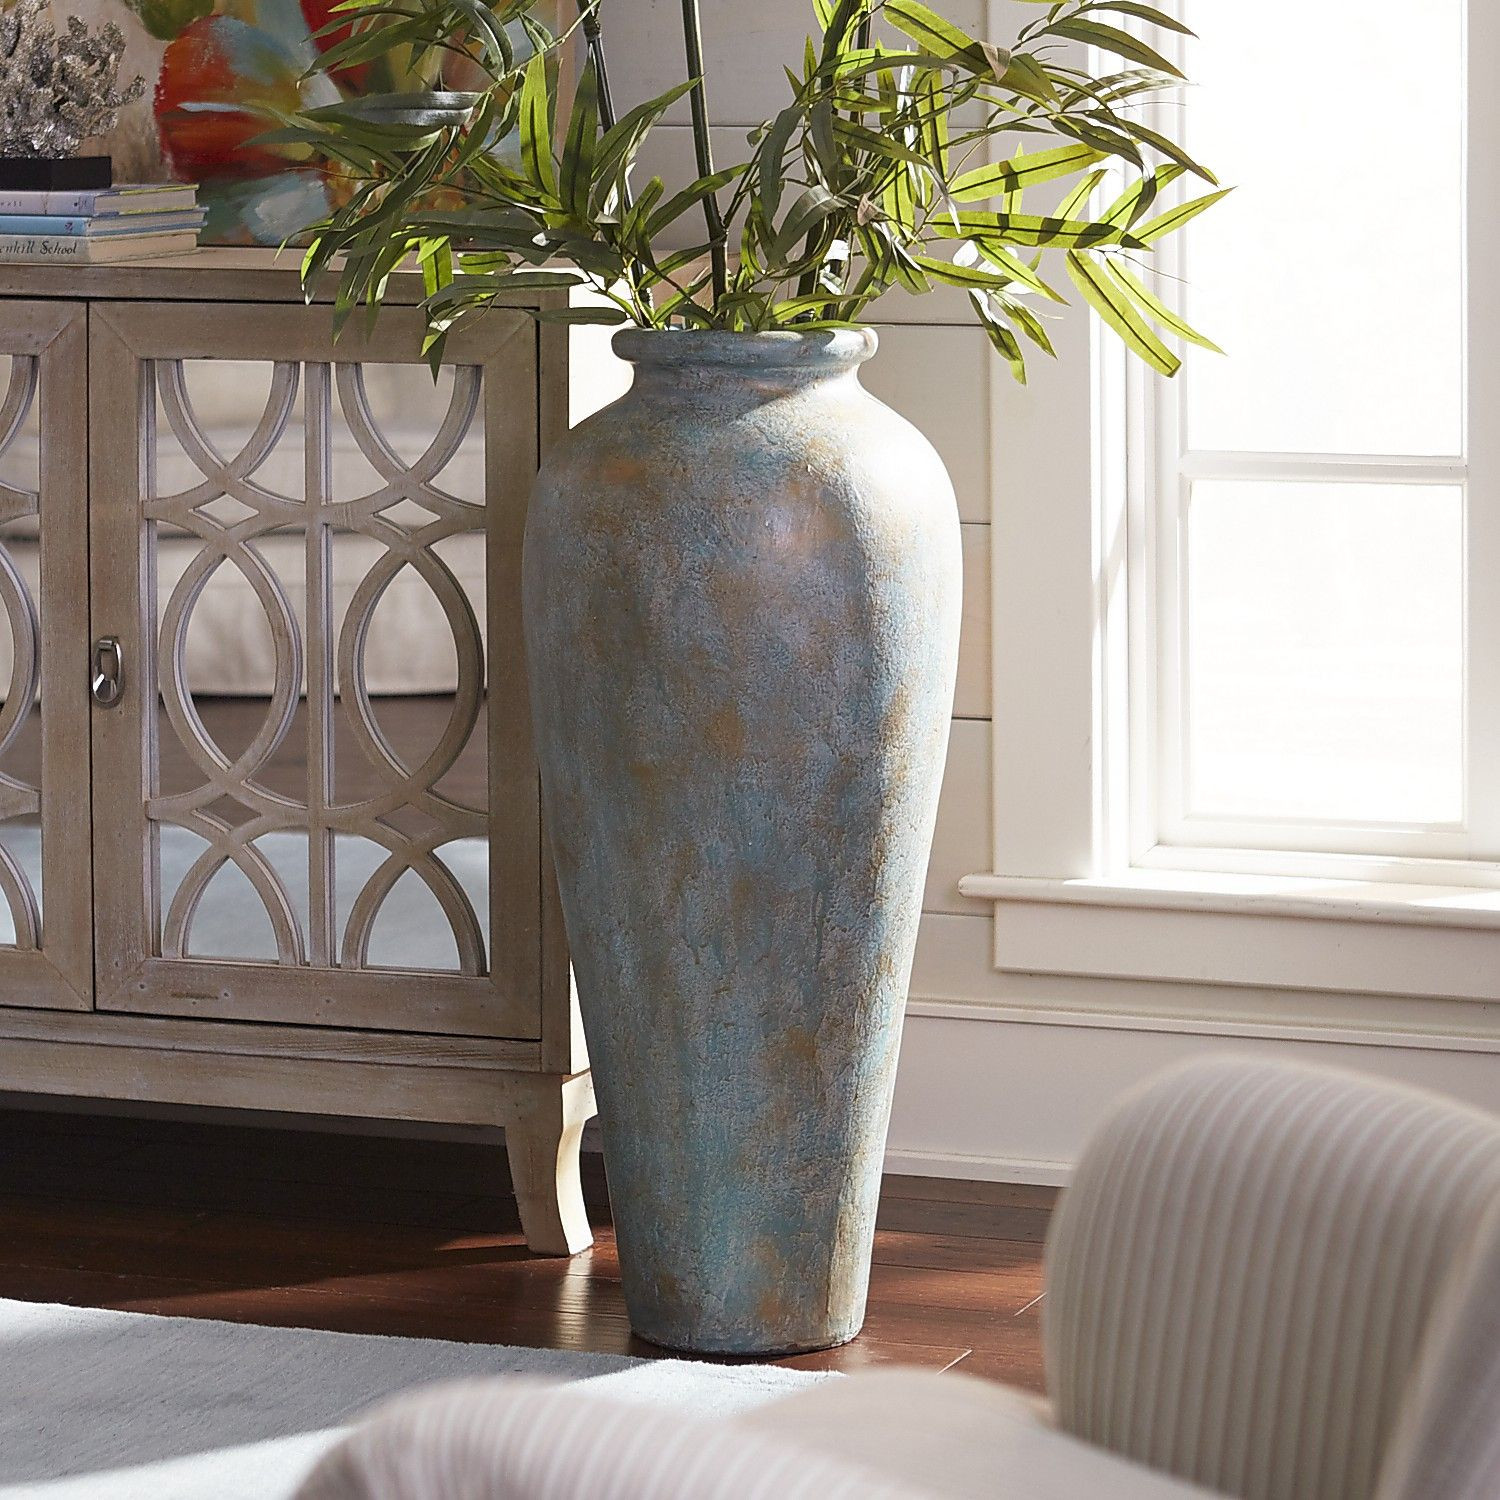 large decorative vases and urns of blue green patina urn floor vase products pinterest flooring regarding blue green patina urn floor vase